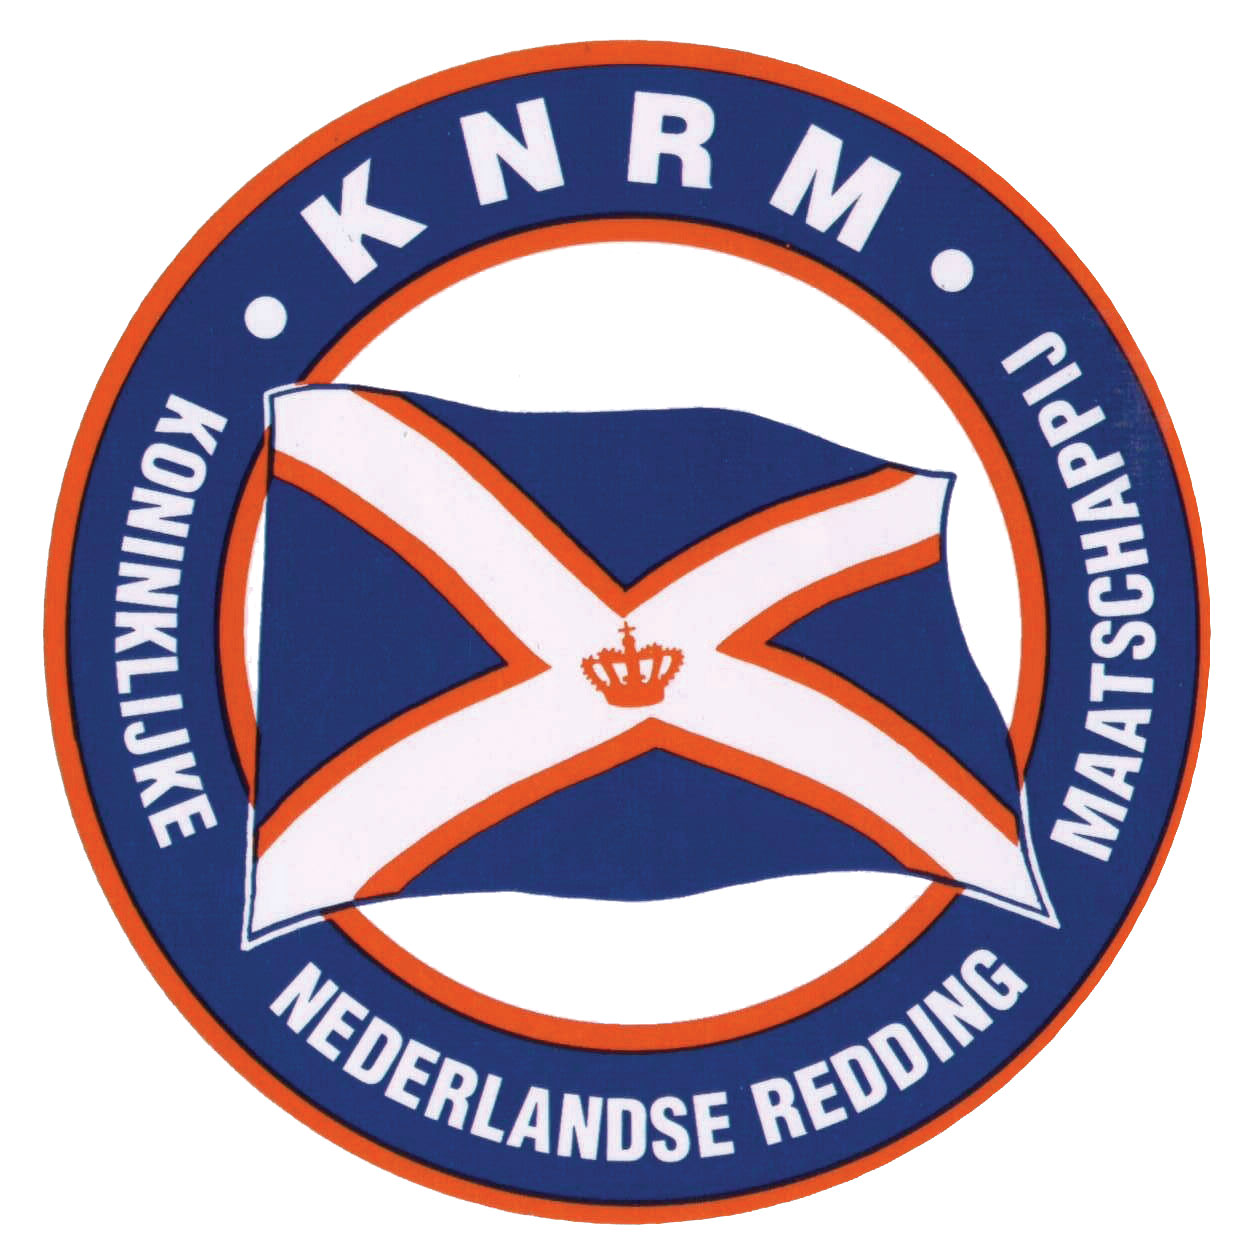 KNRM  Dutch Sea Rescue Institution